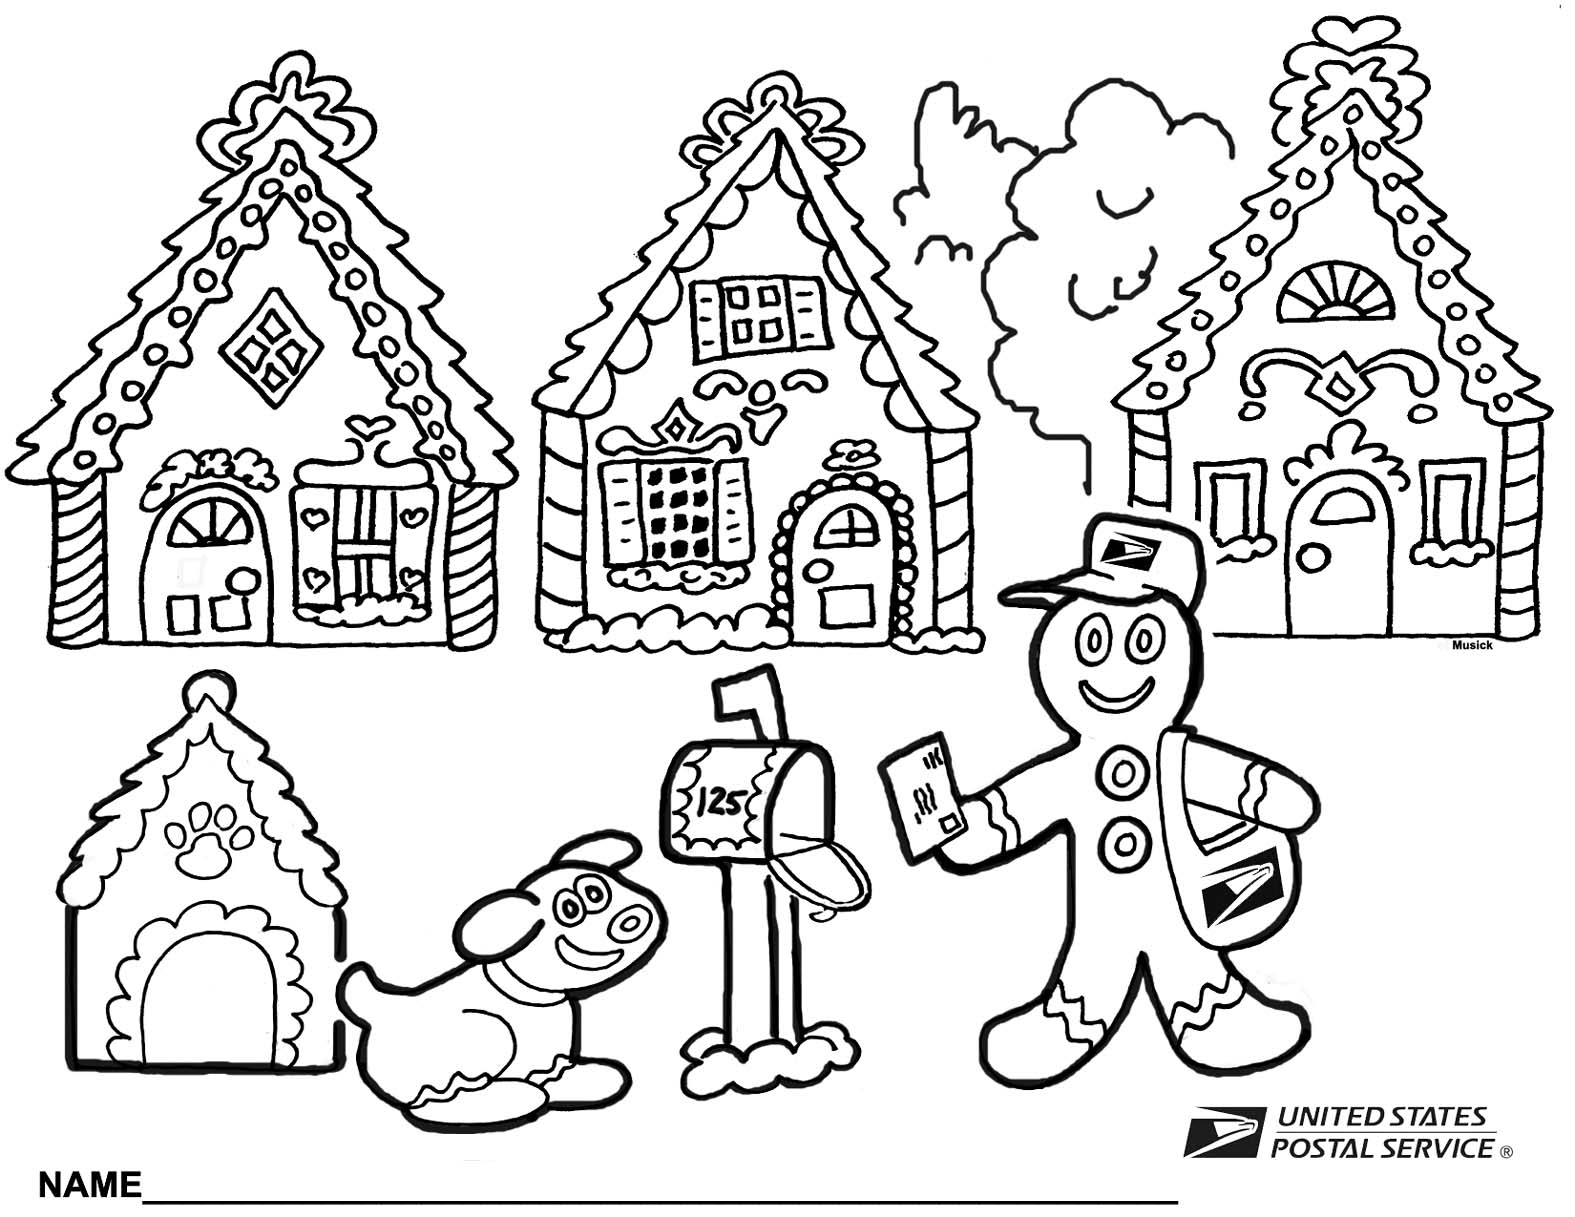 Post Office Coloring Coloring Pages